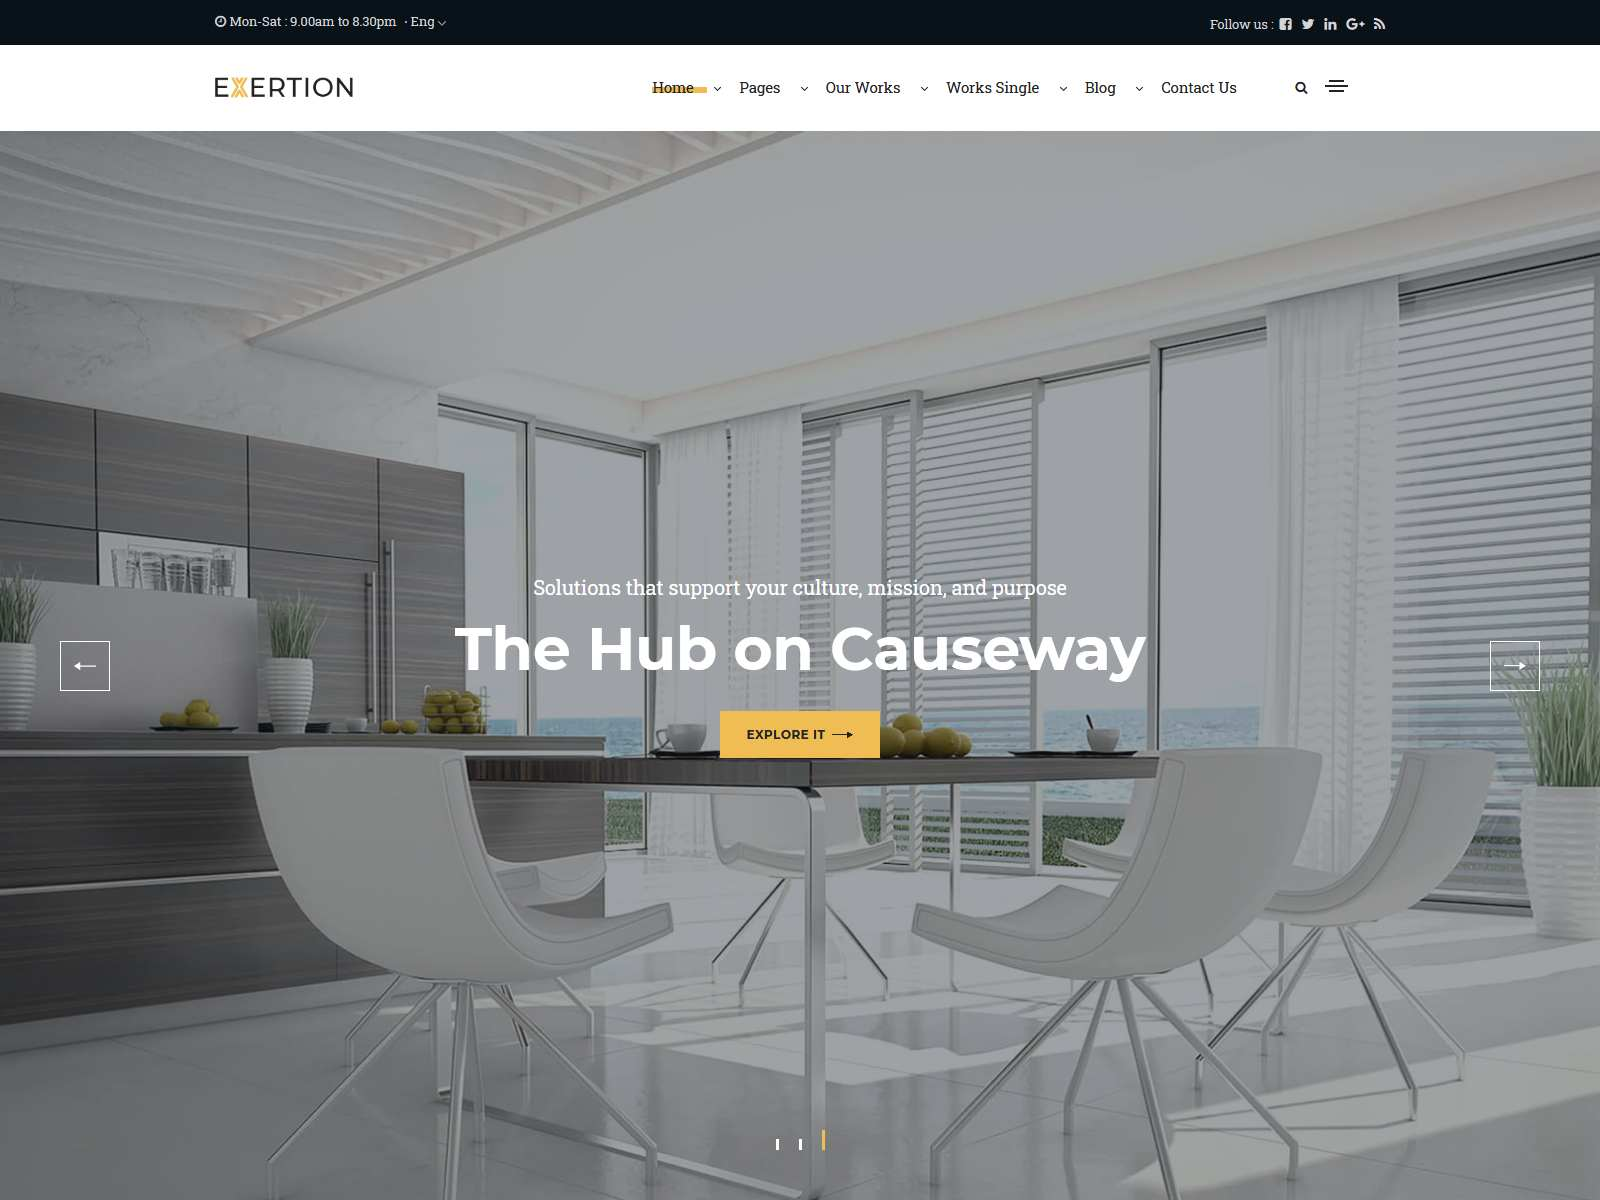 Exertion - Architecture & Interior Design WordPress Theme